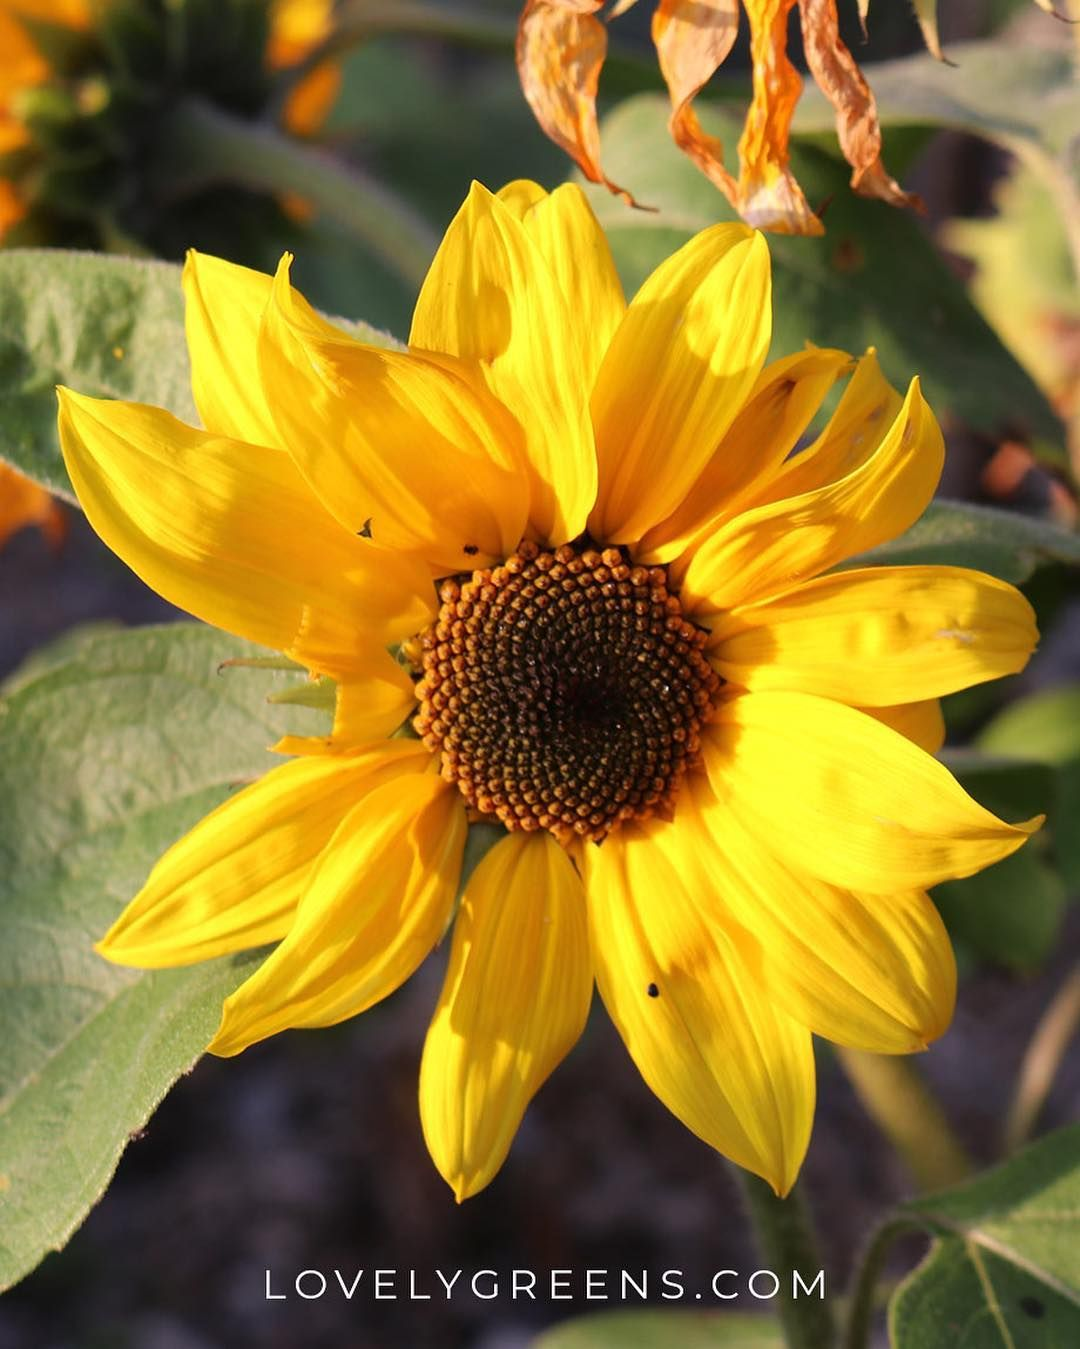 🌻A bit bedraggled but still glowing in the sunshine. These ...